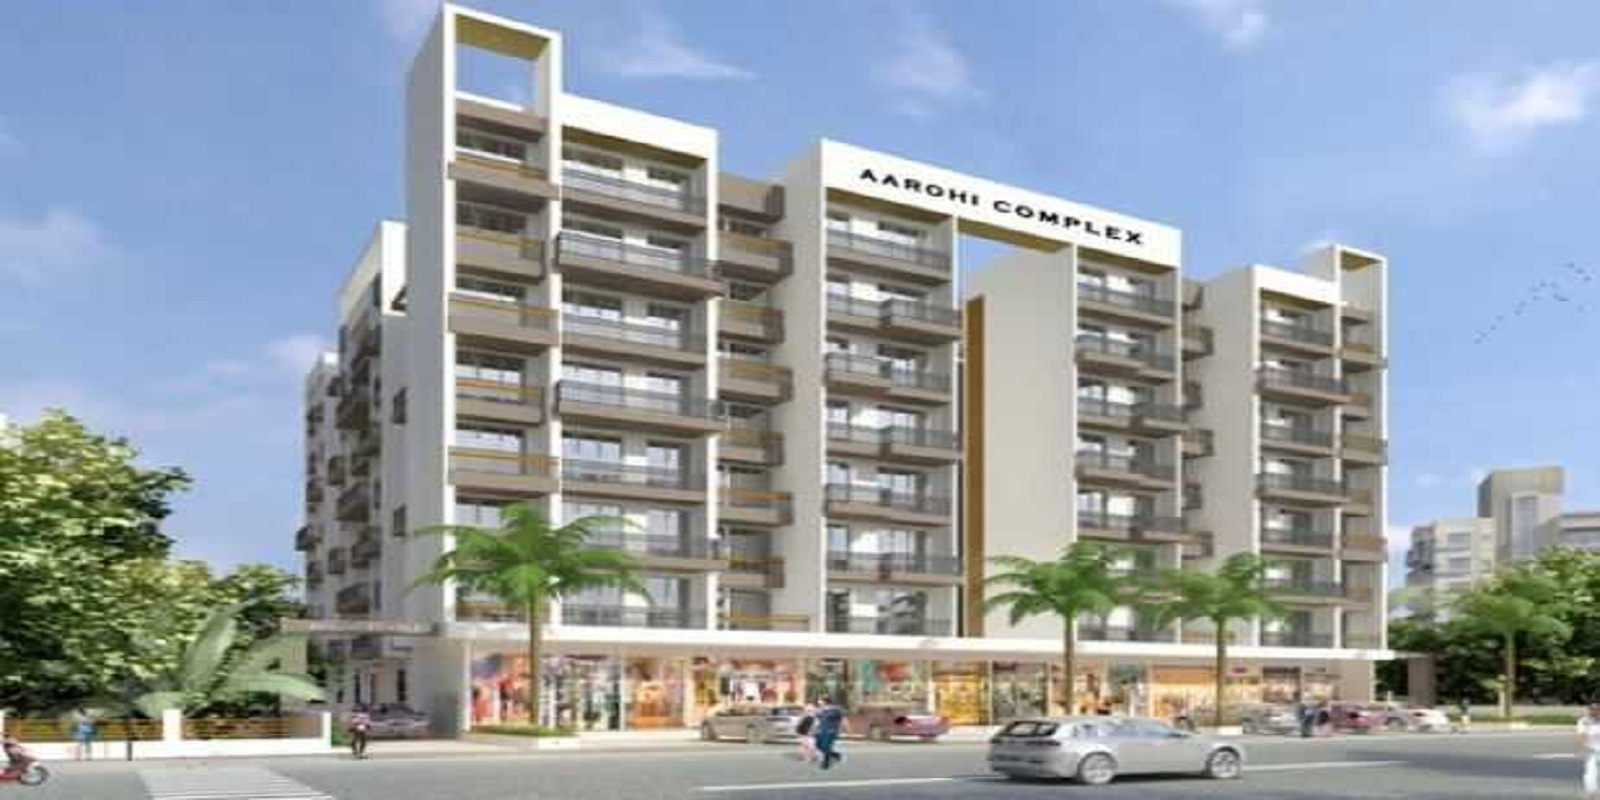 today shyam aarohi complex project large image2